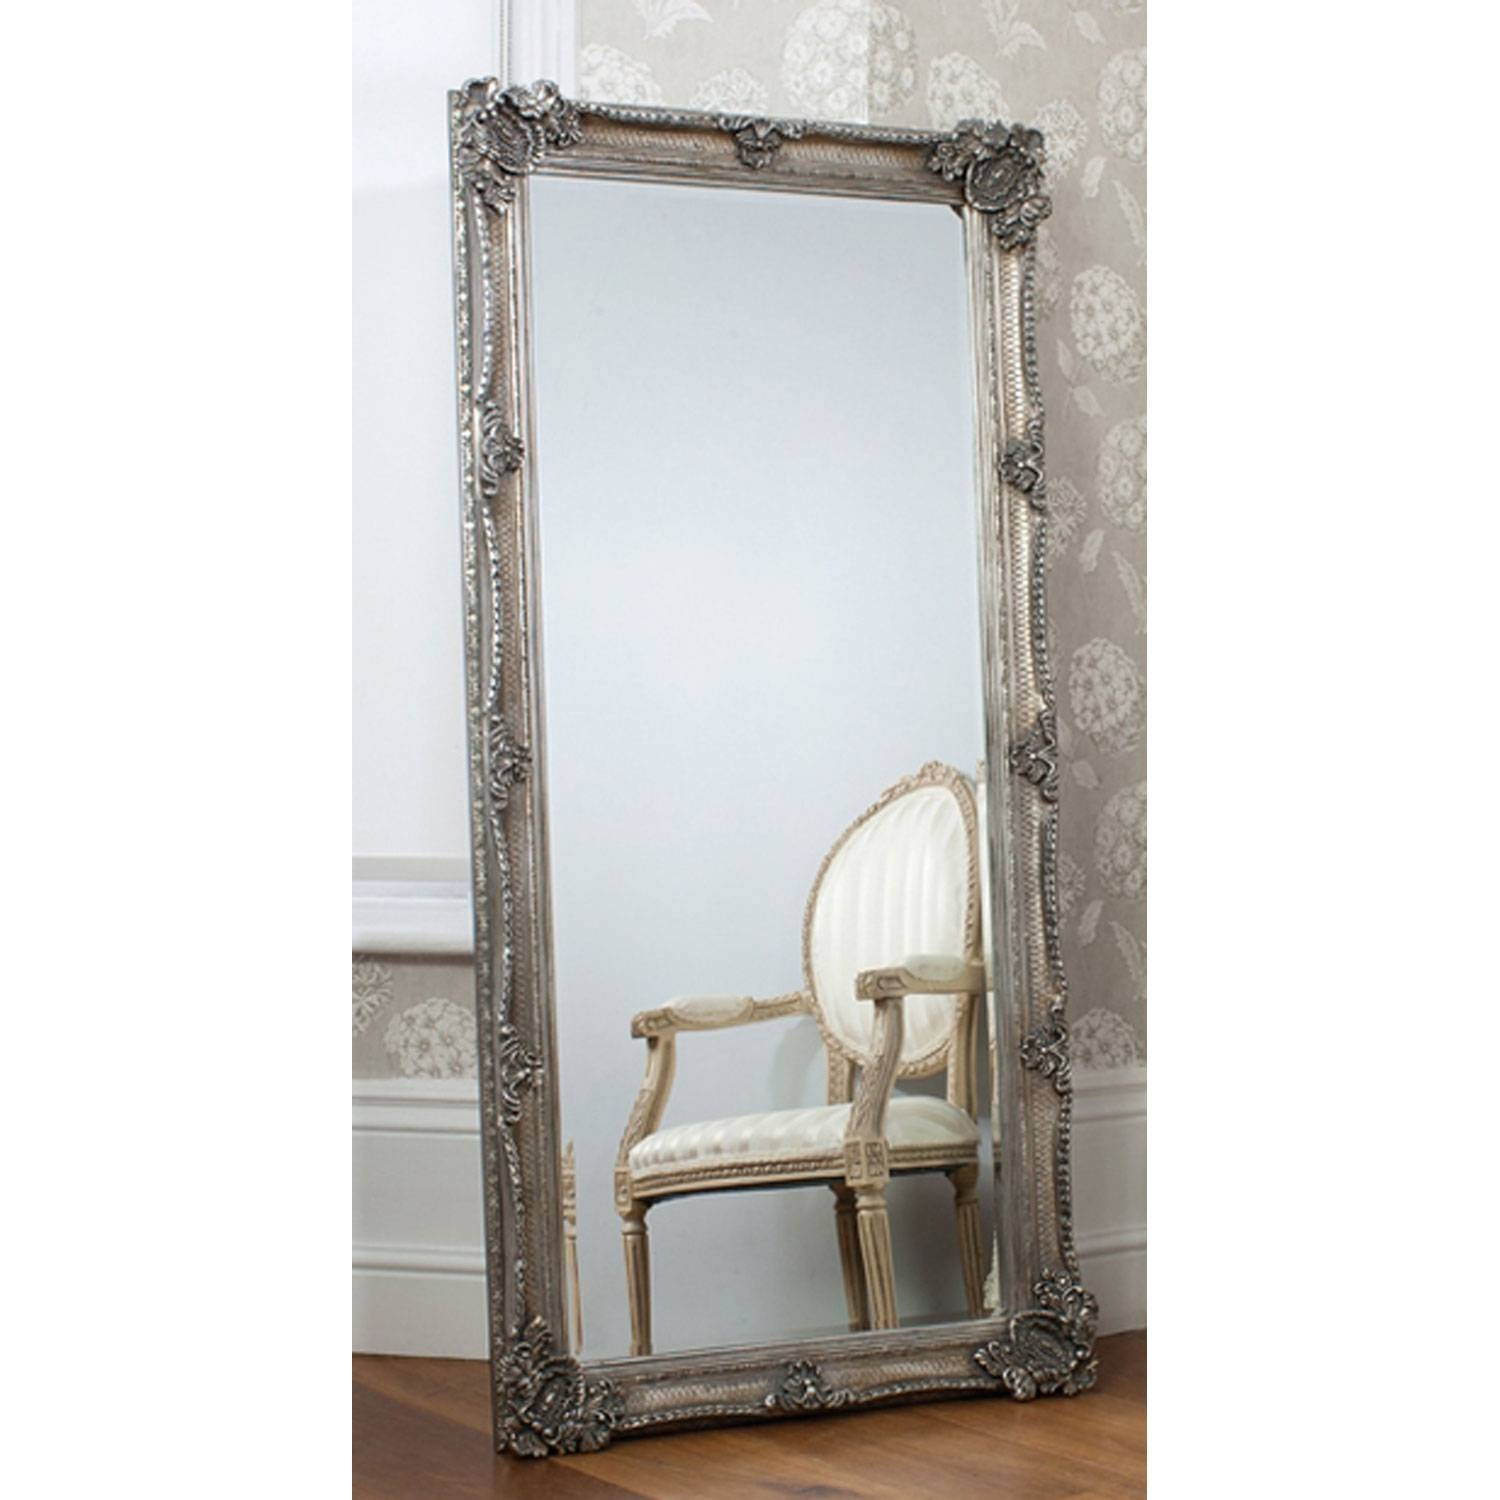 Furniture: Luxury Leaner Mirror For Home Accessories Ideas — Mtyp inside Tall Silver Mirrors (Image 11 of 25)